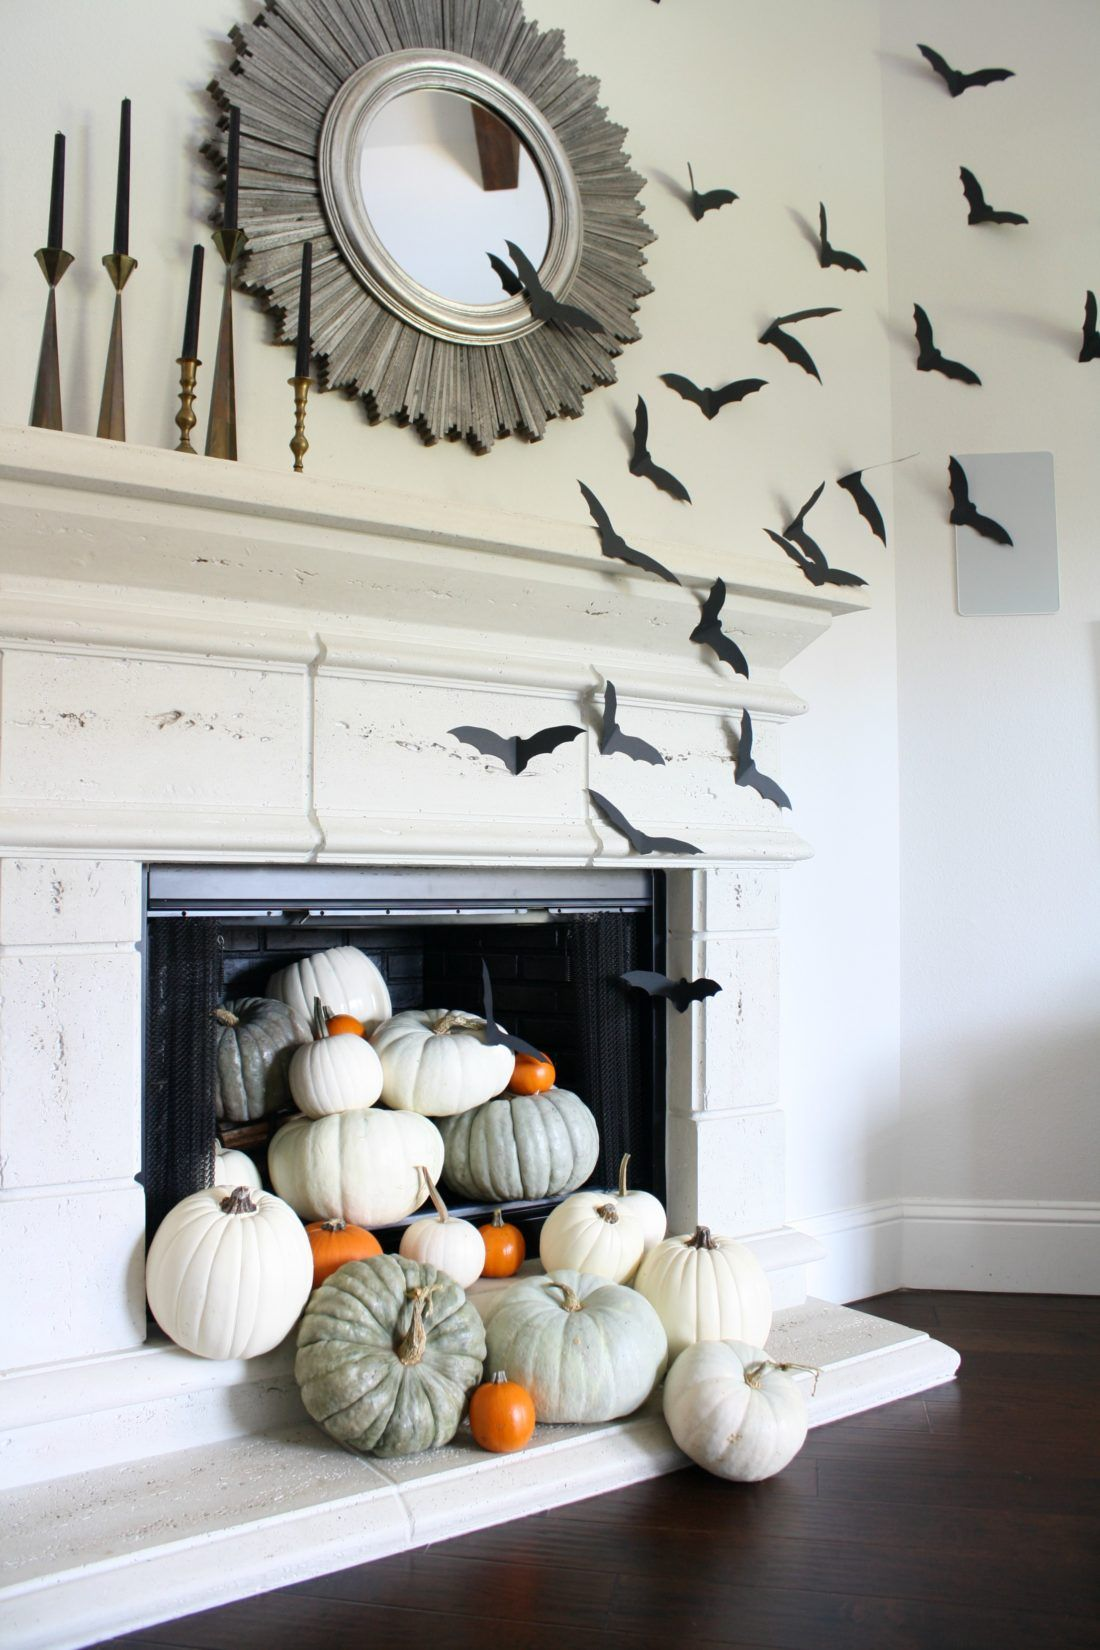 simple halloween decorations, paper bats, bat halloween decor - Kid Friendly Halloween Decorations